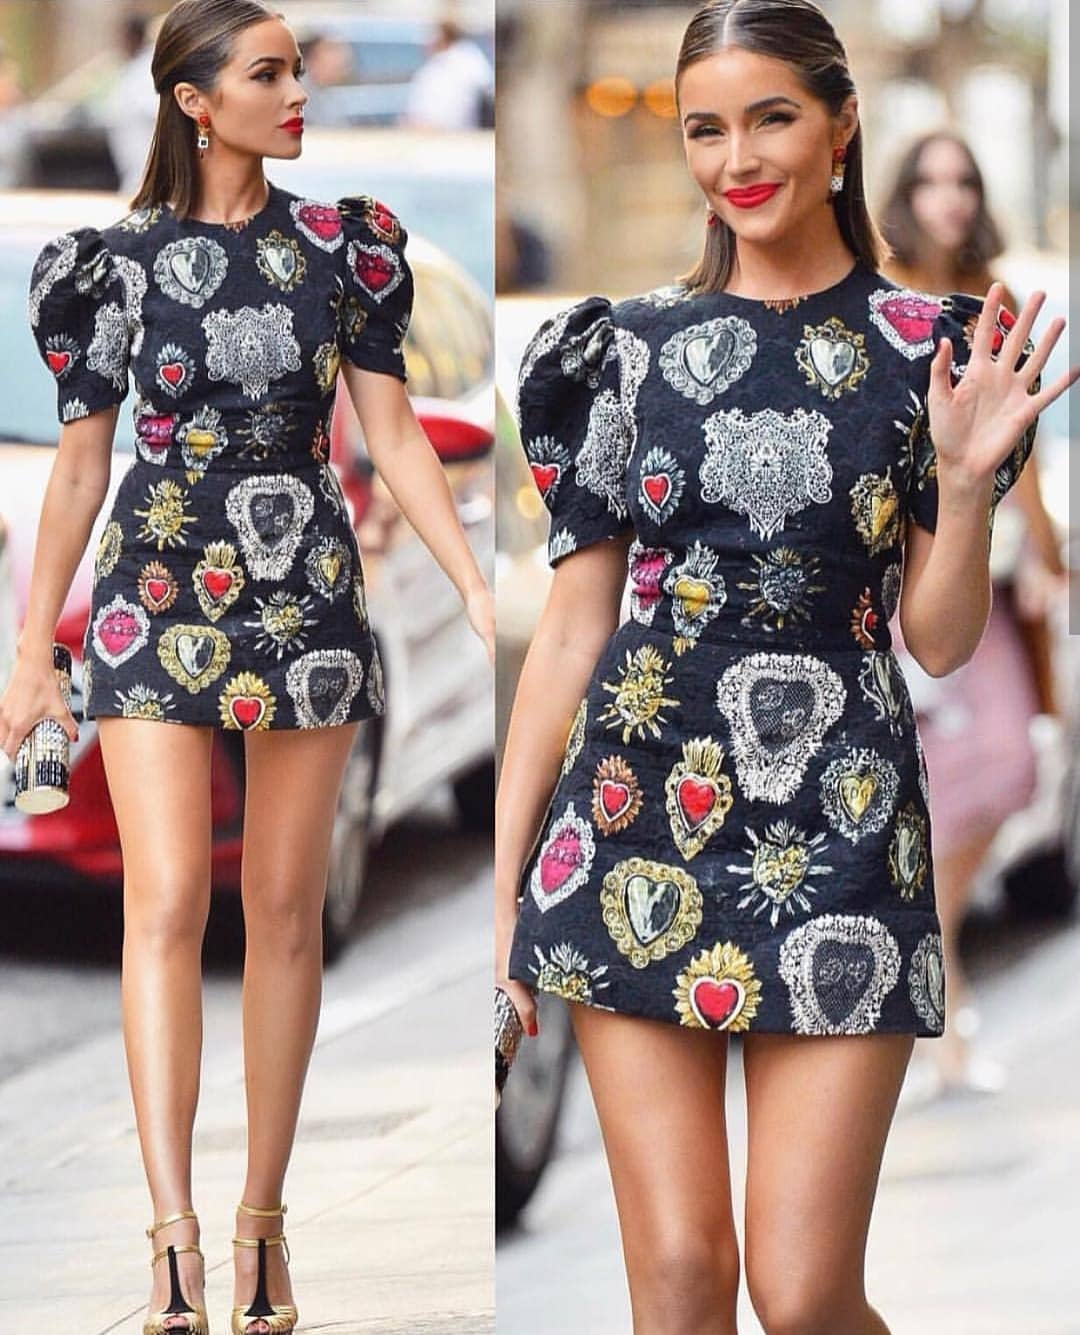 Short Puff Sleeve Black Printed Mini Dress For Summer 2021